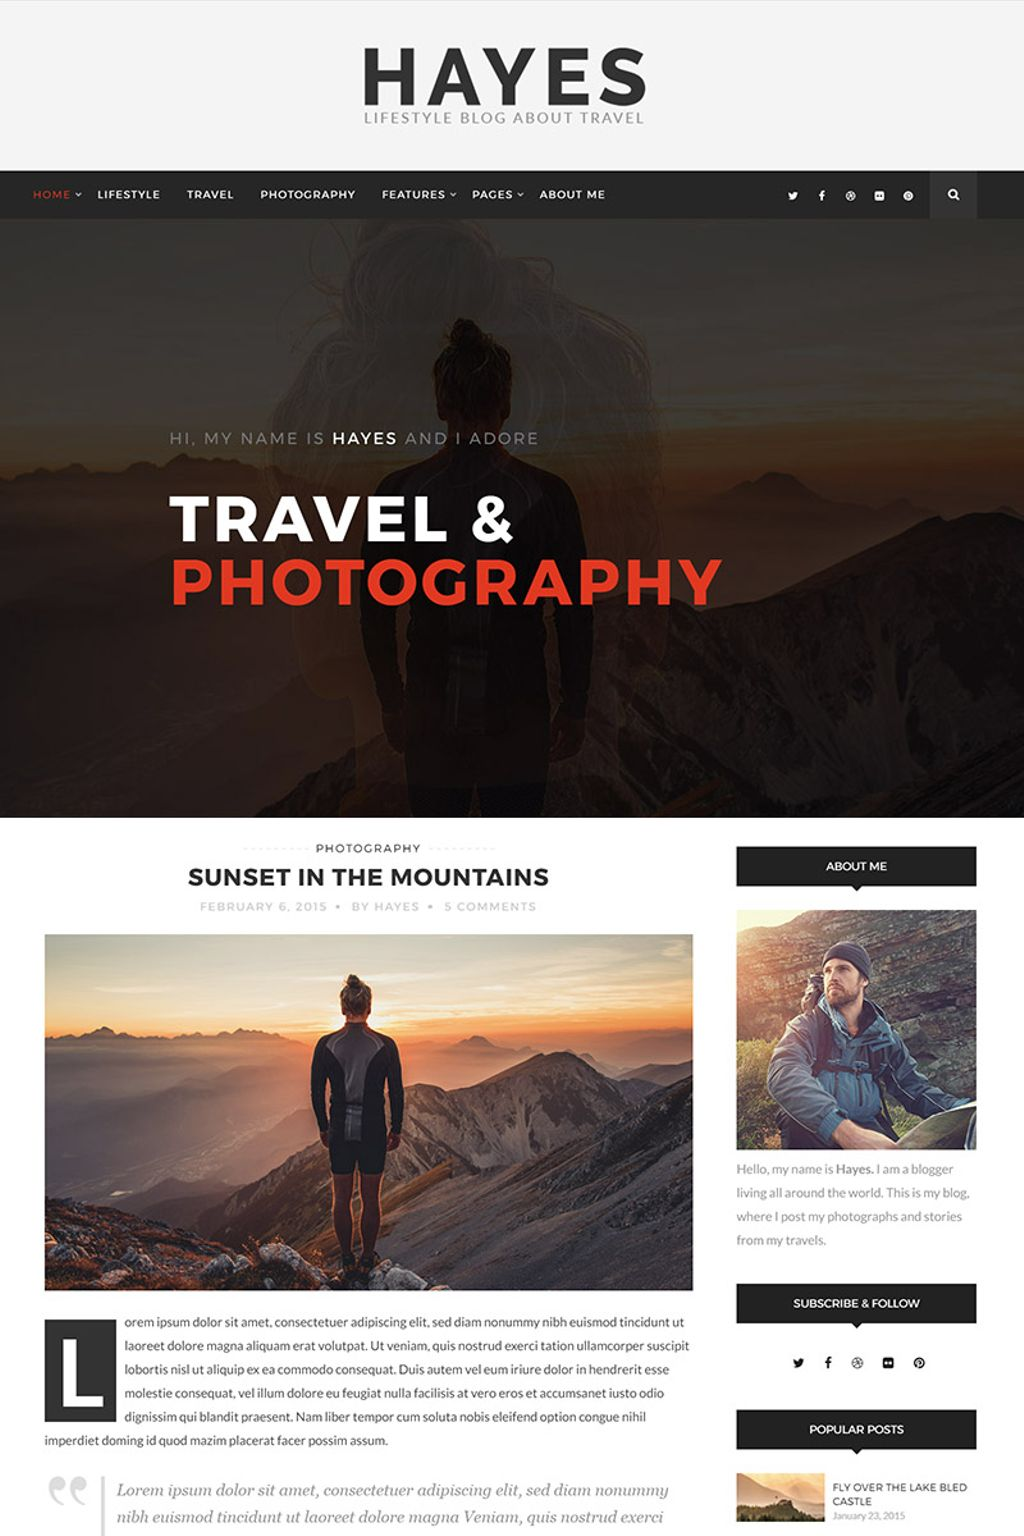 Hayes - Travel Blog WordPress Theme - screenshot